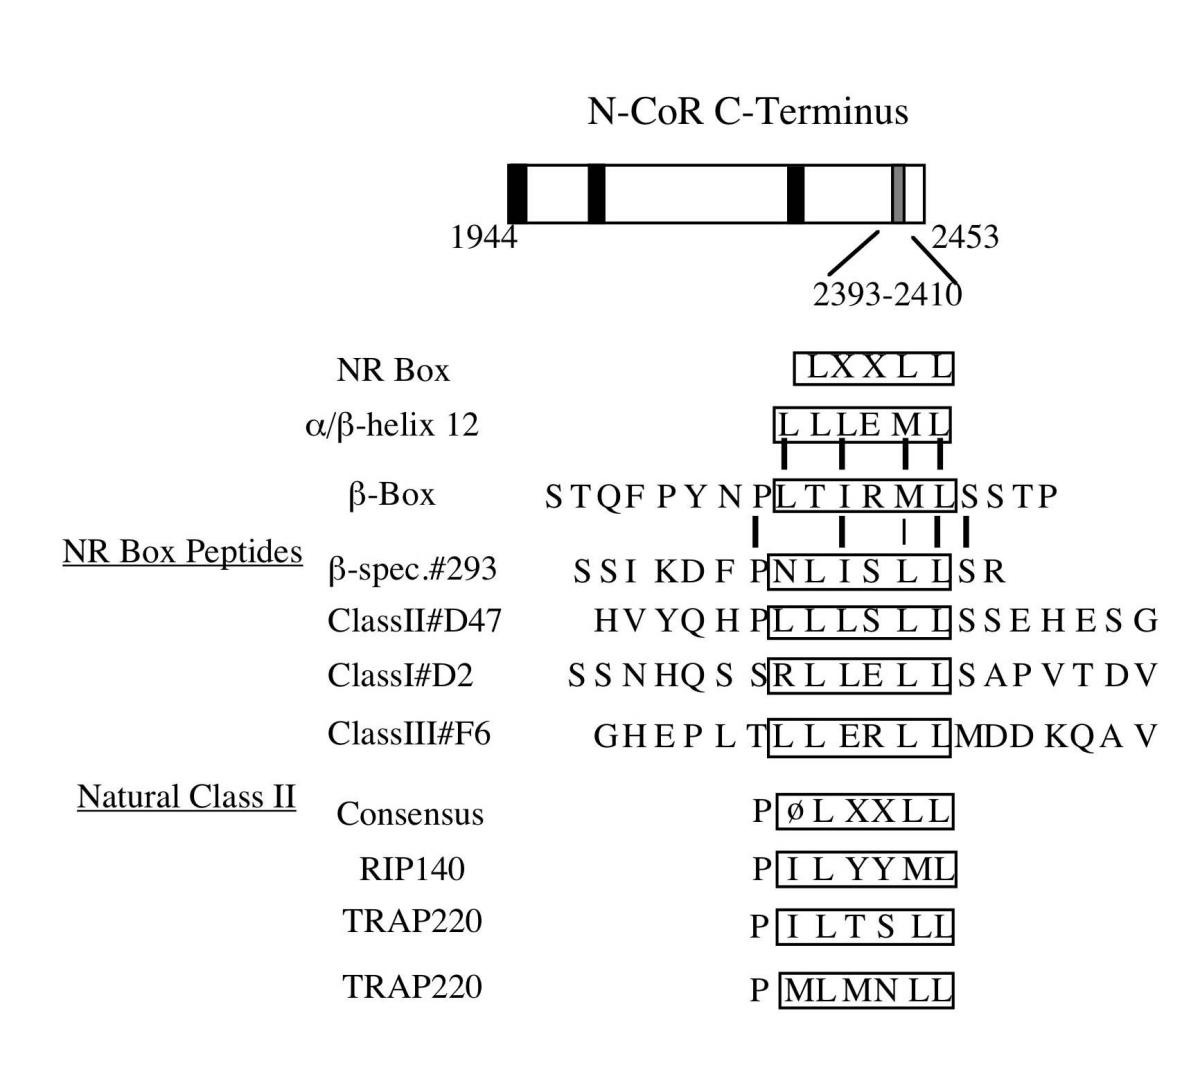 https://static-content.springer.com/image/art%3A10.1186%2F1478-1336-1-4/MediaObjects/41076_2003_Article_6_Fig5_HTML.jpg